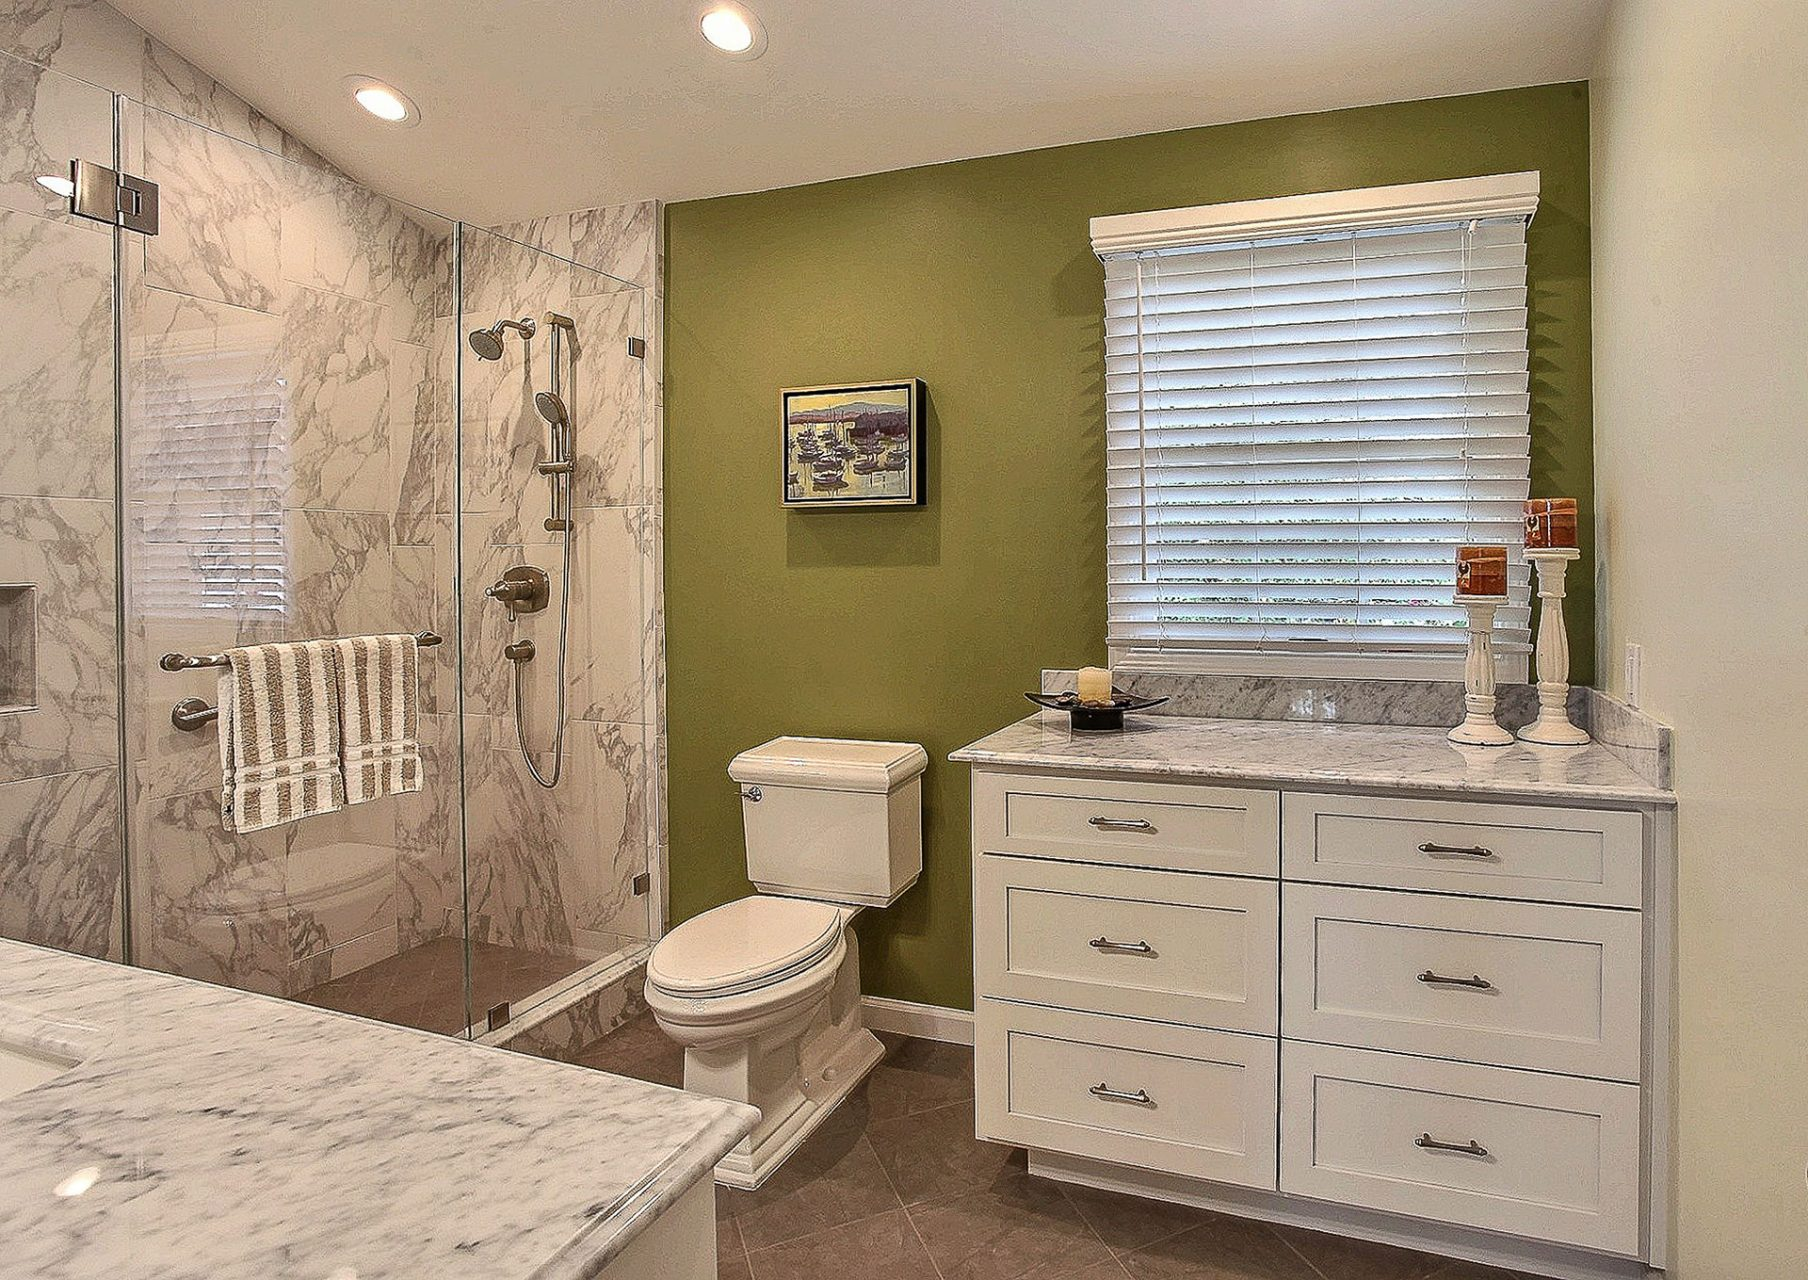 white toilet and cabinets